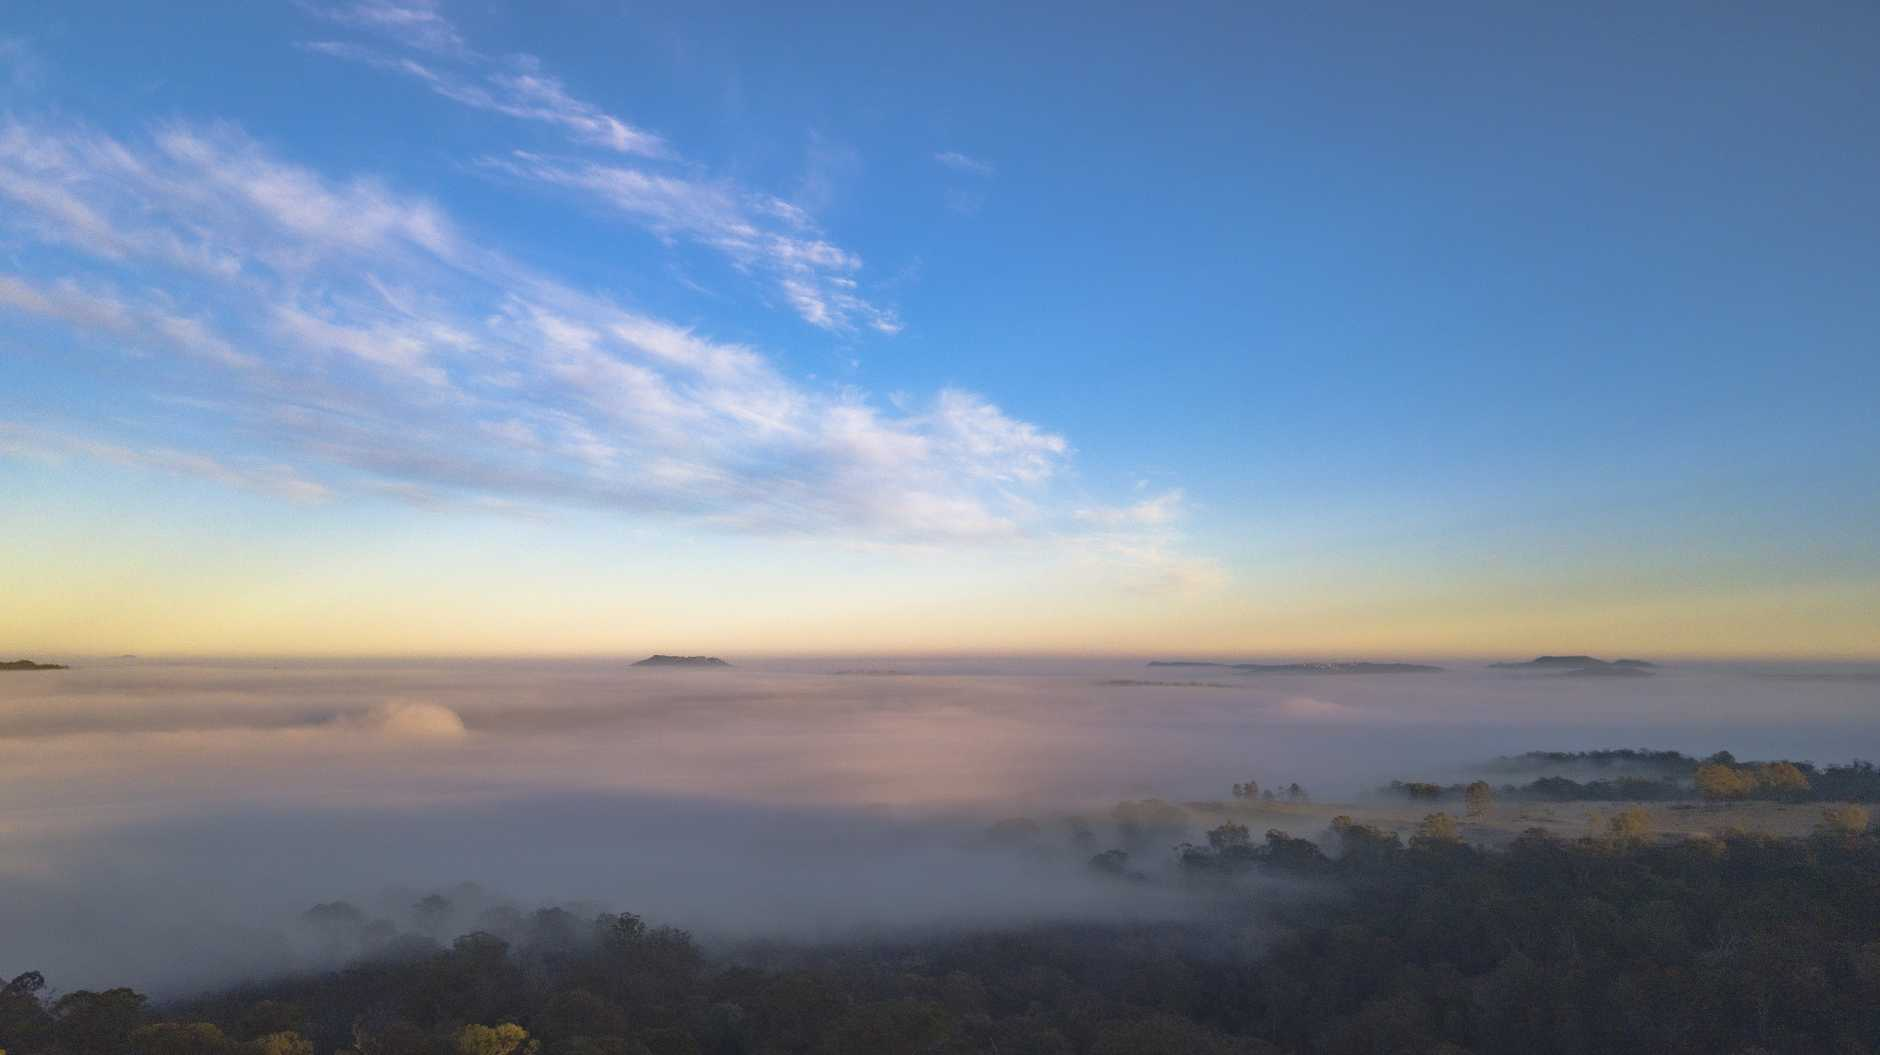 Toni Malferrari captured a photo of fog settling in over Mount Kynoch this morning.